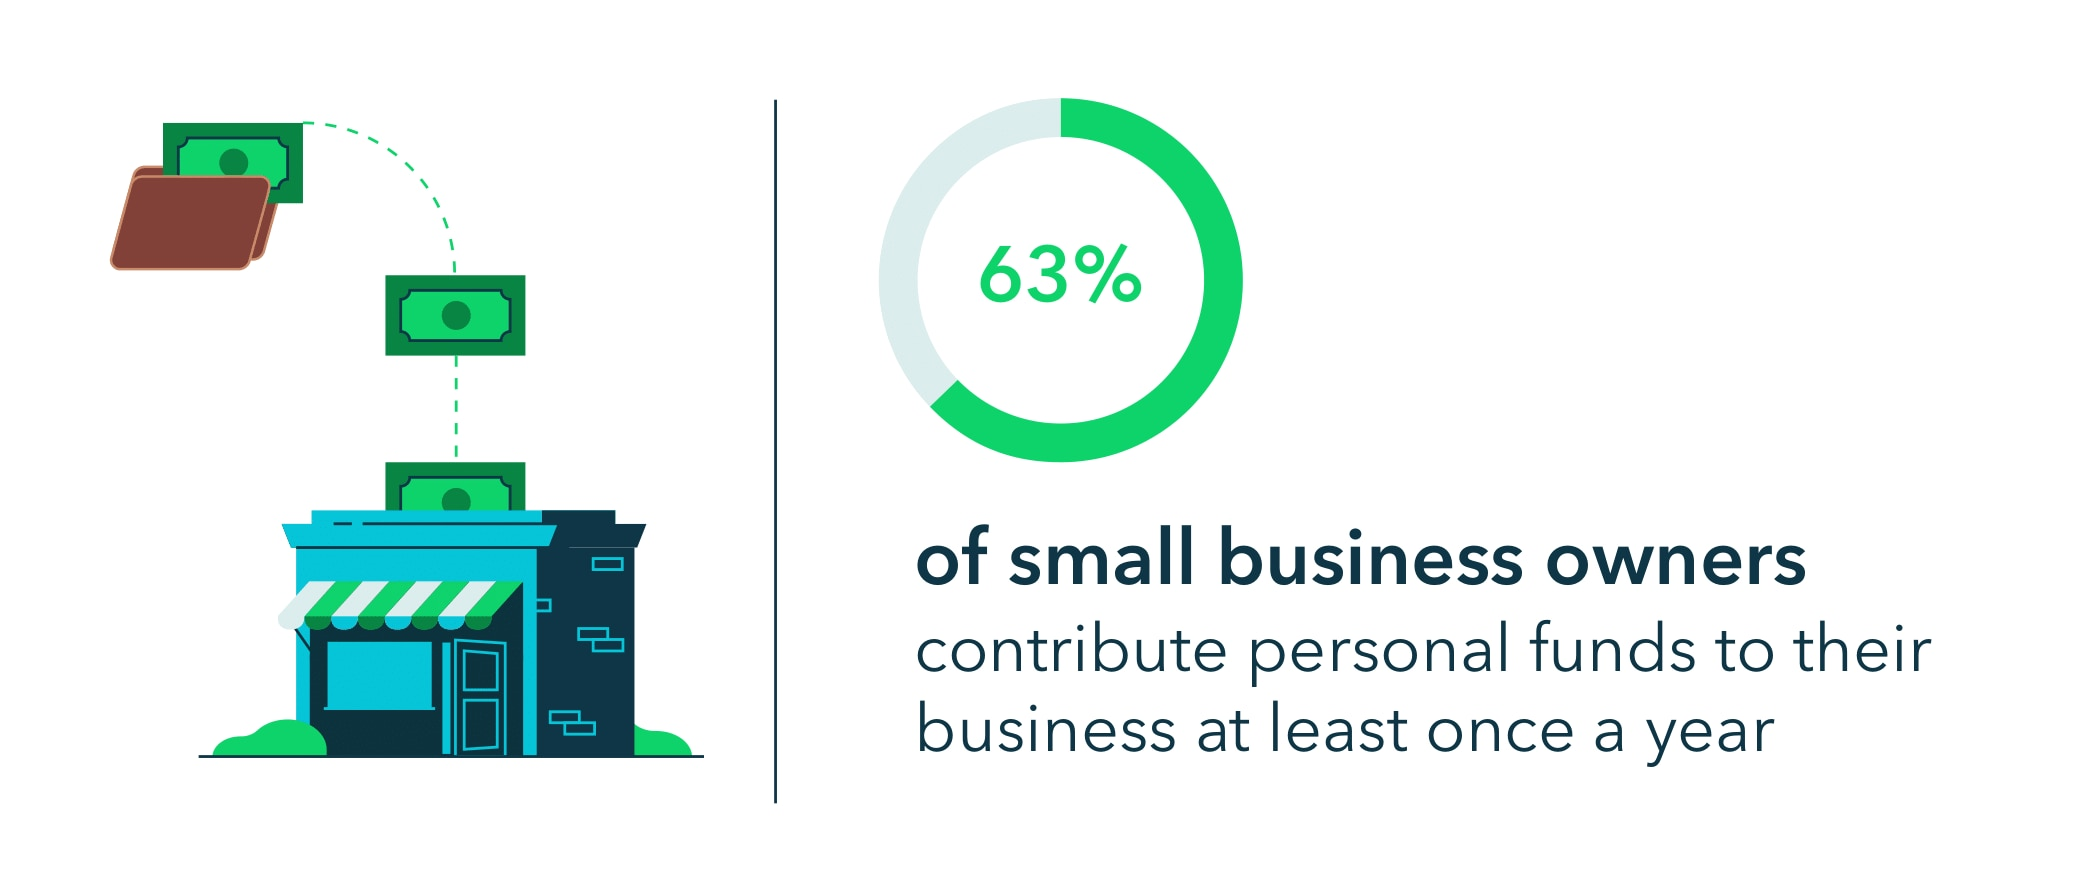 63% of small business owners contribute personal funds to their business at least once a year.